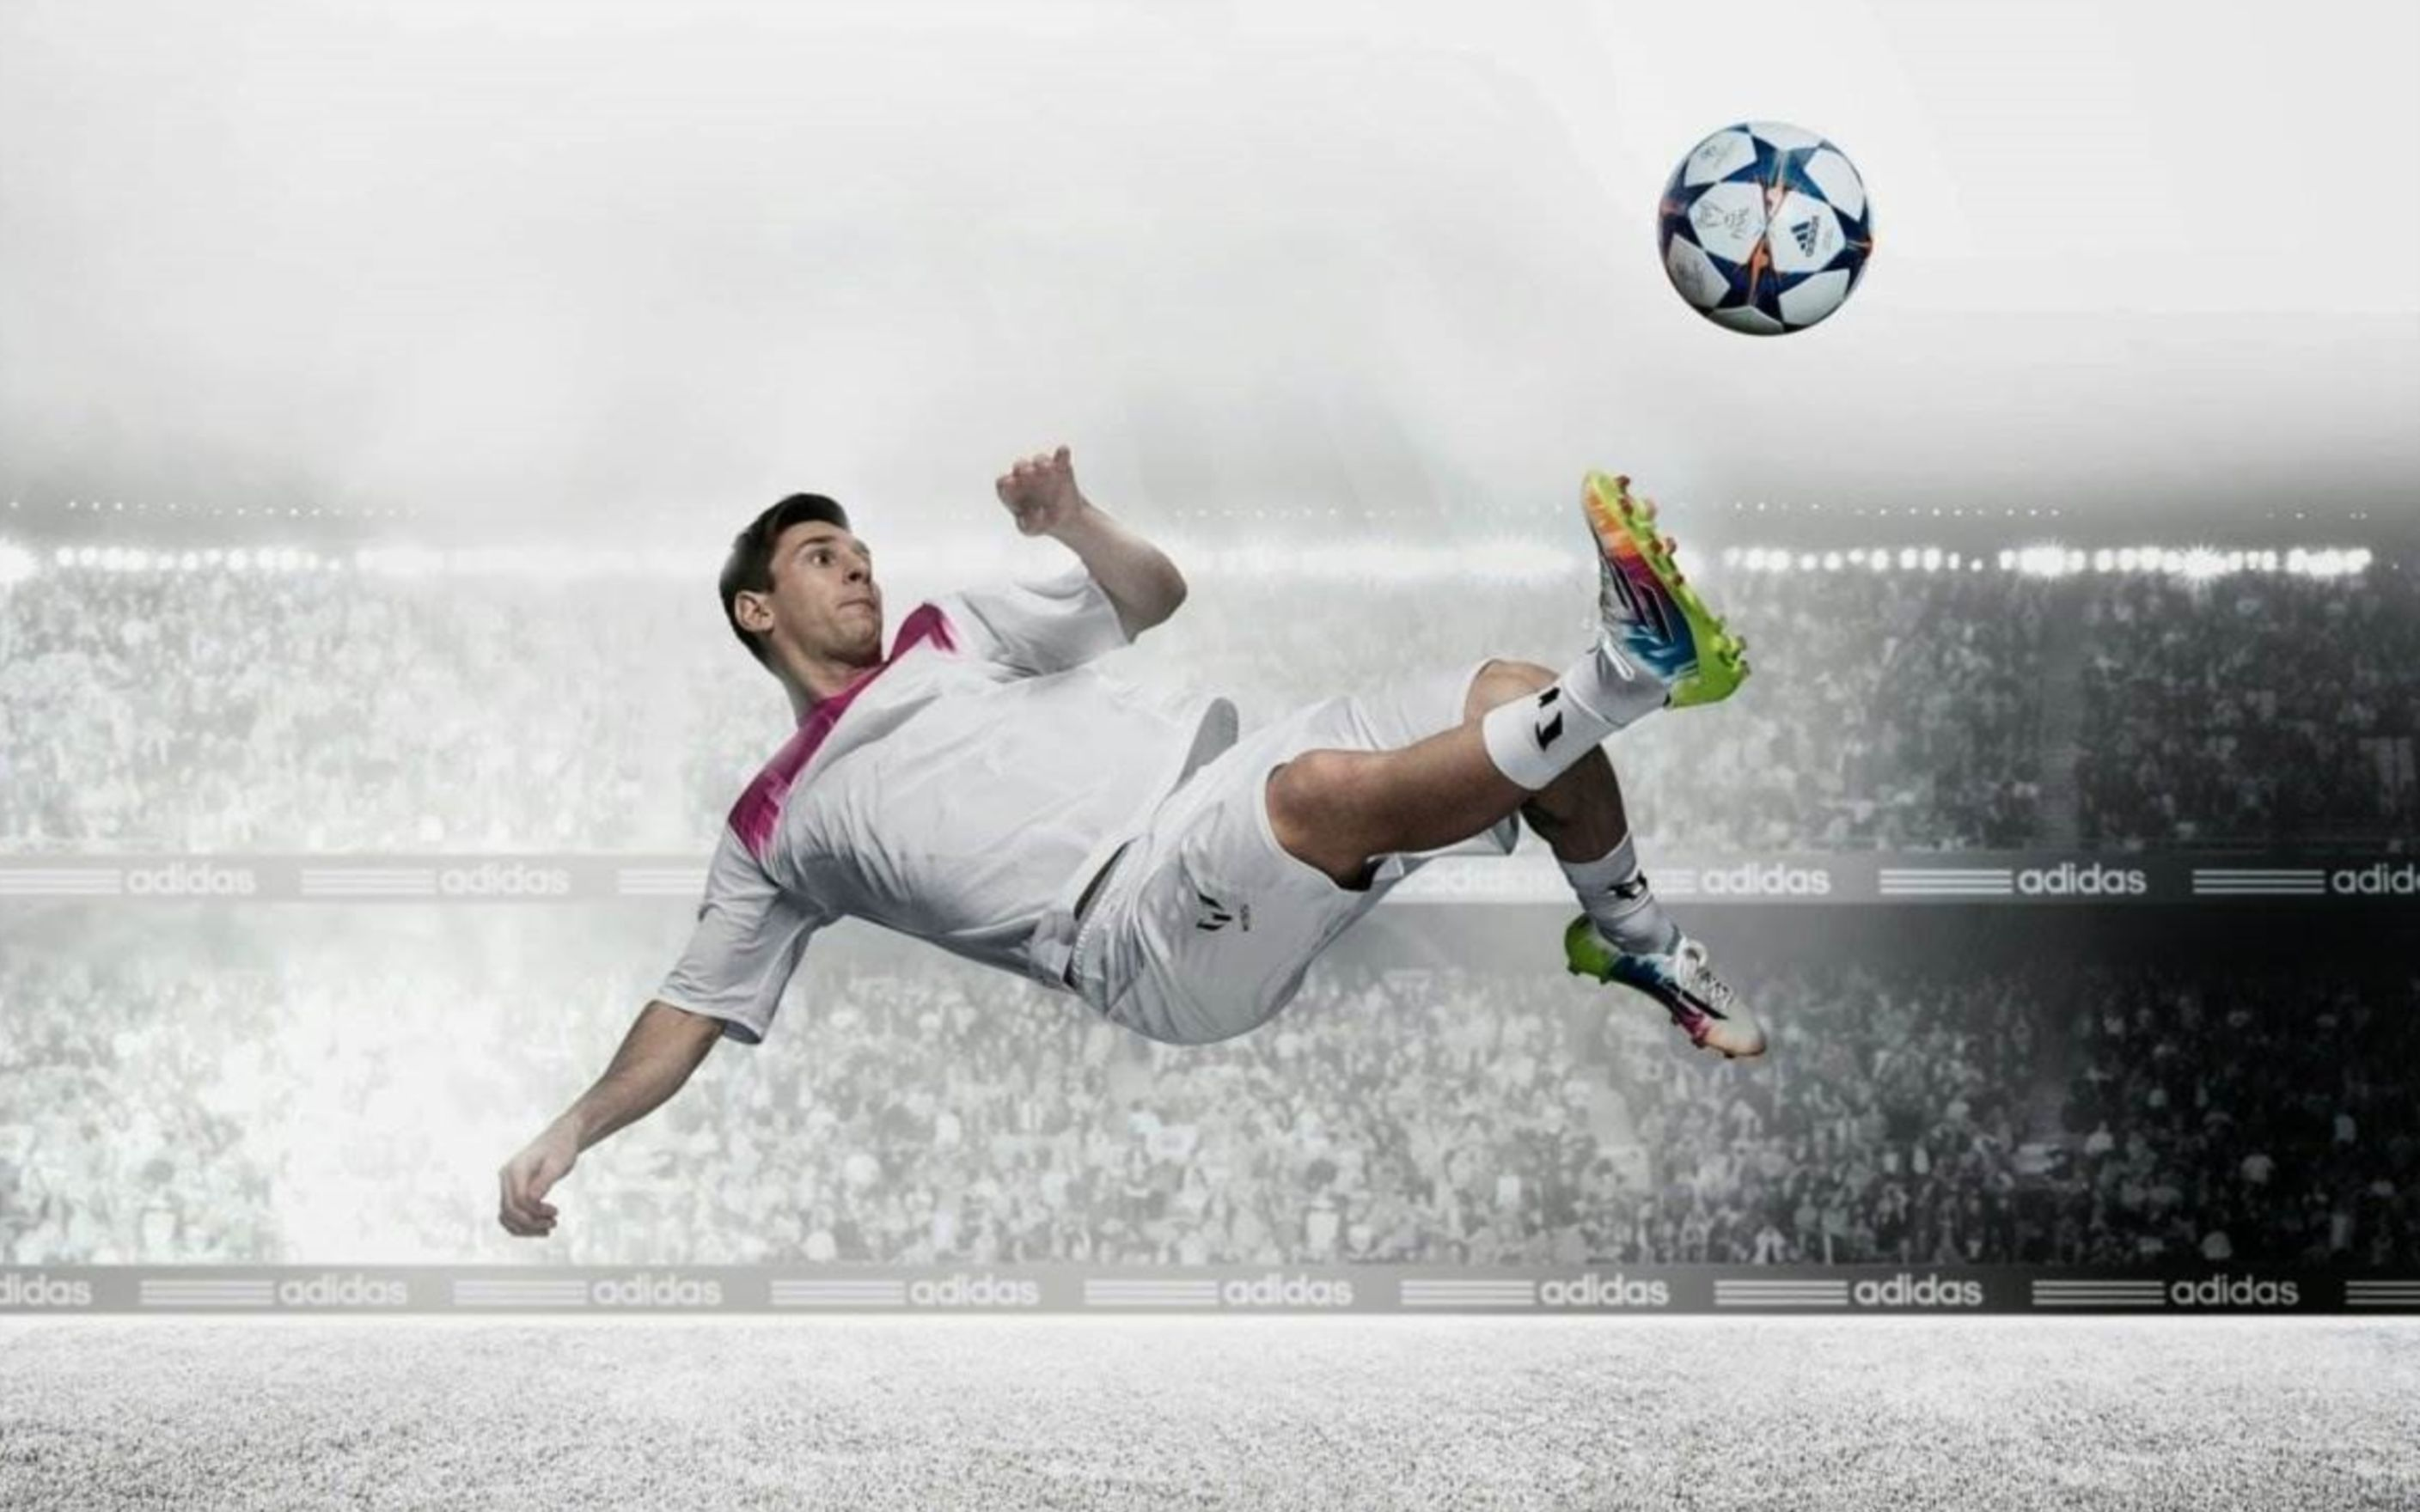 Download free HD Adidas F50 Adizero Wallpaper, image